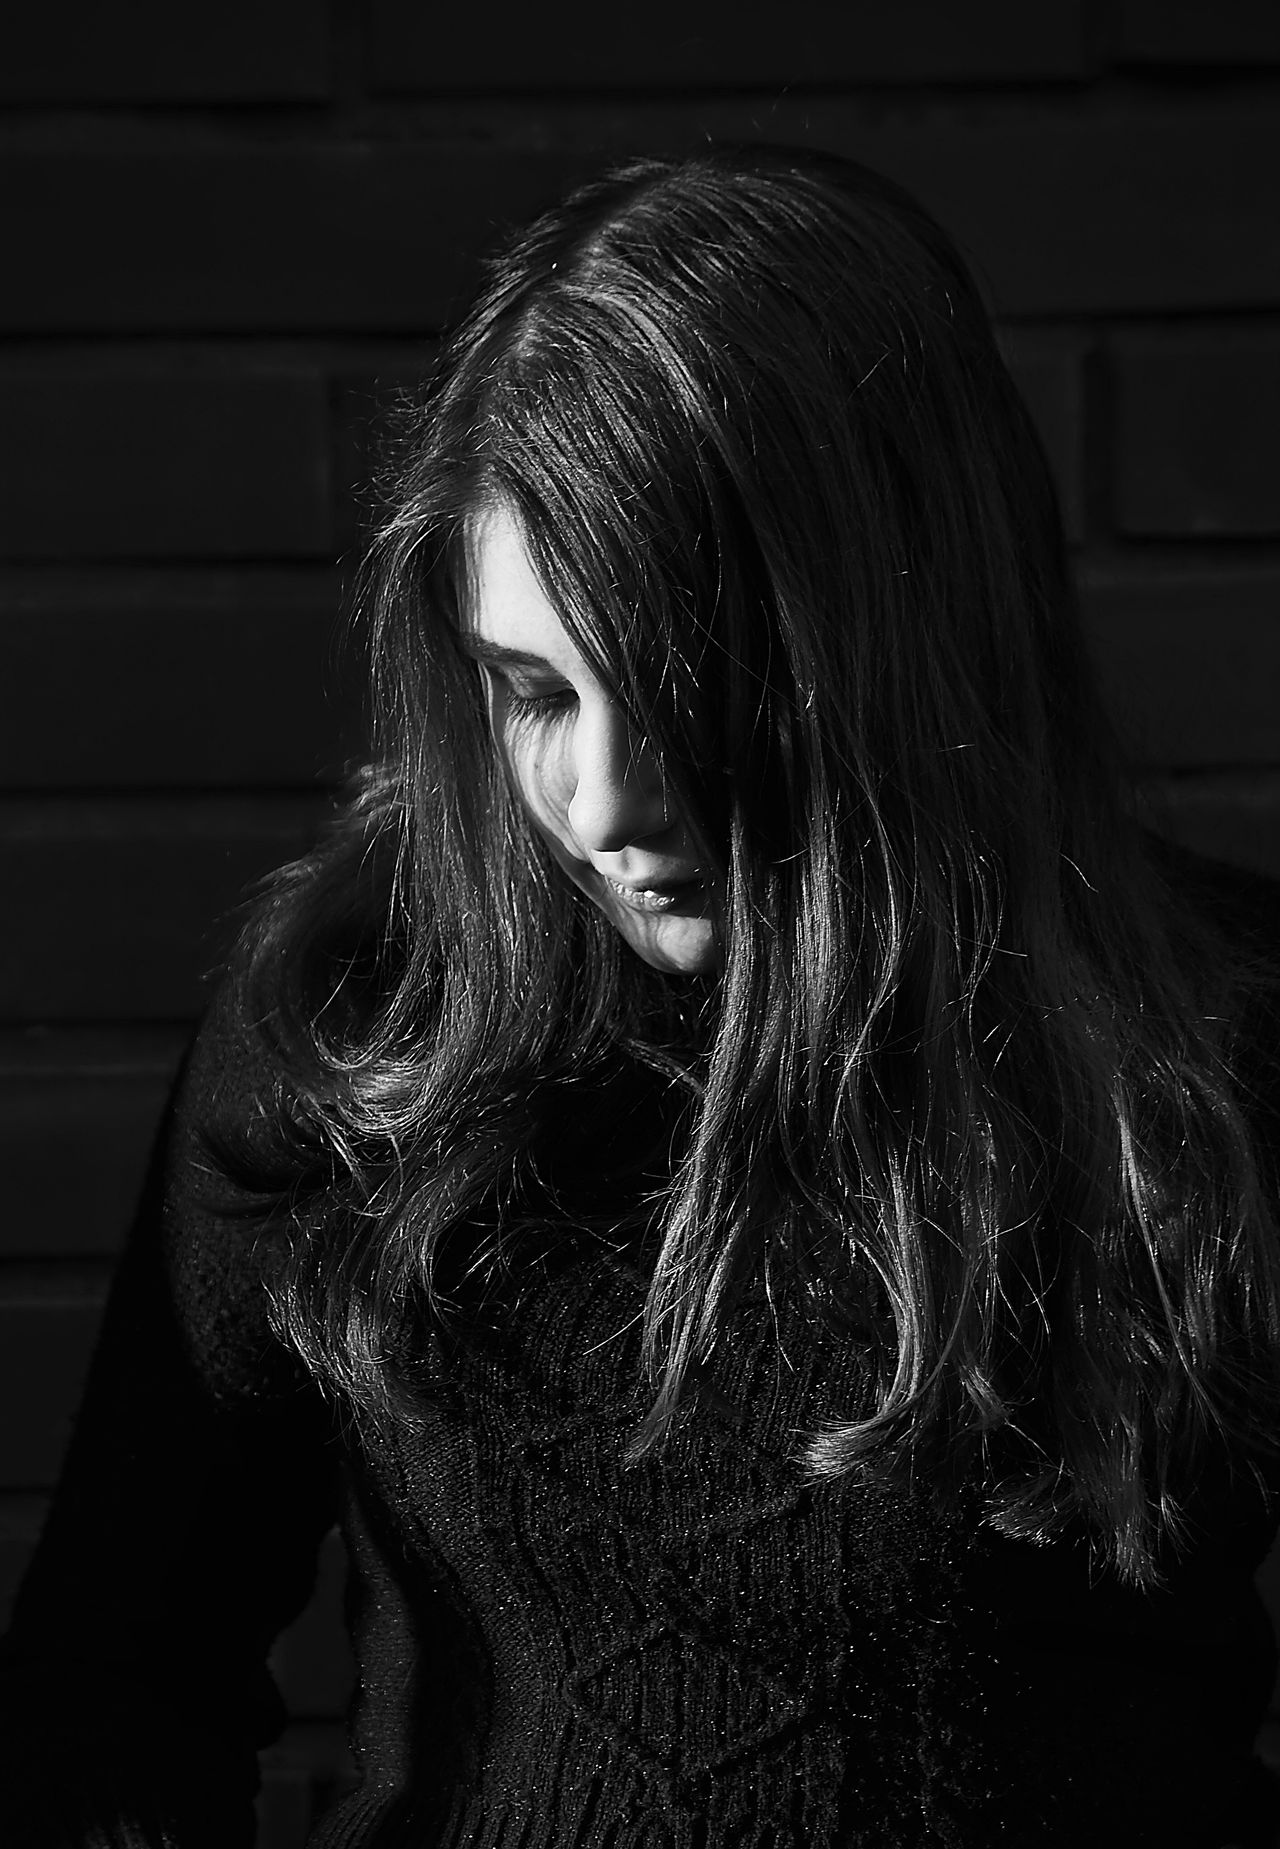 Russia Portrait Real People One Person Long Hair Young Women Young Adult Leisure Activity Lifestyles Indoors  Beautiful Woman Day Close-up Portraits Black And White Black & White Blackandwhite Blackandwhite Photography Black And White Photography Black&white Daughter